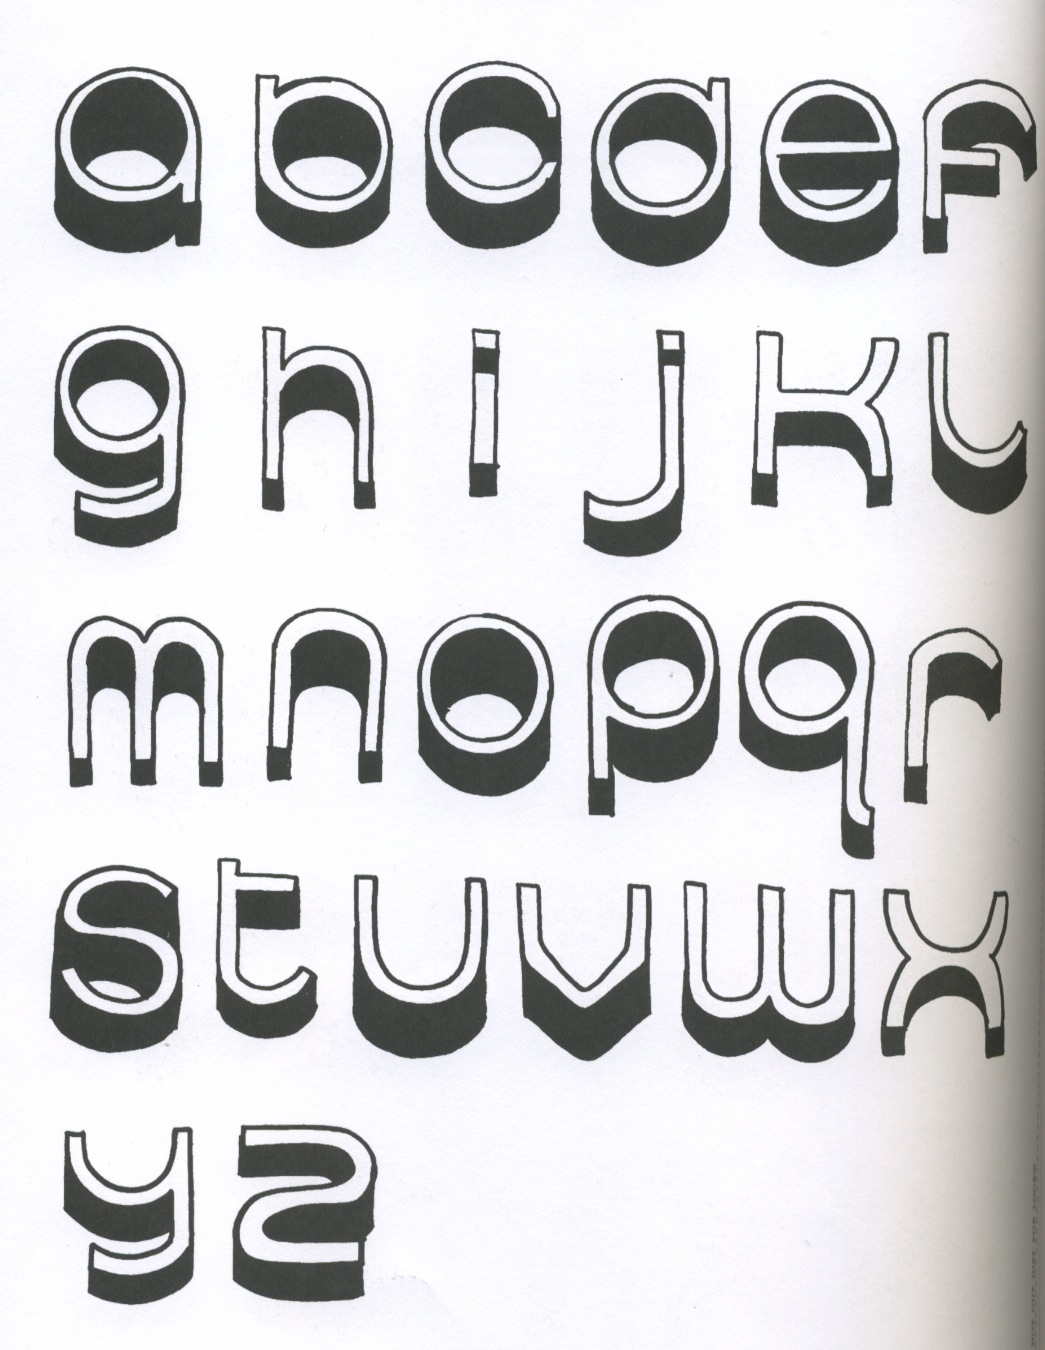 this typeface created by damien correll called hugs for you really attracted me not just for its message but its style of type creating it to look like